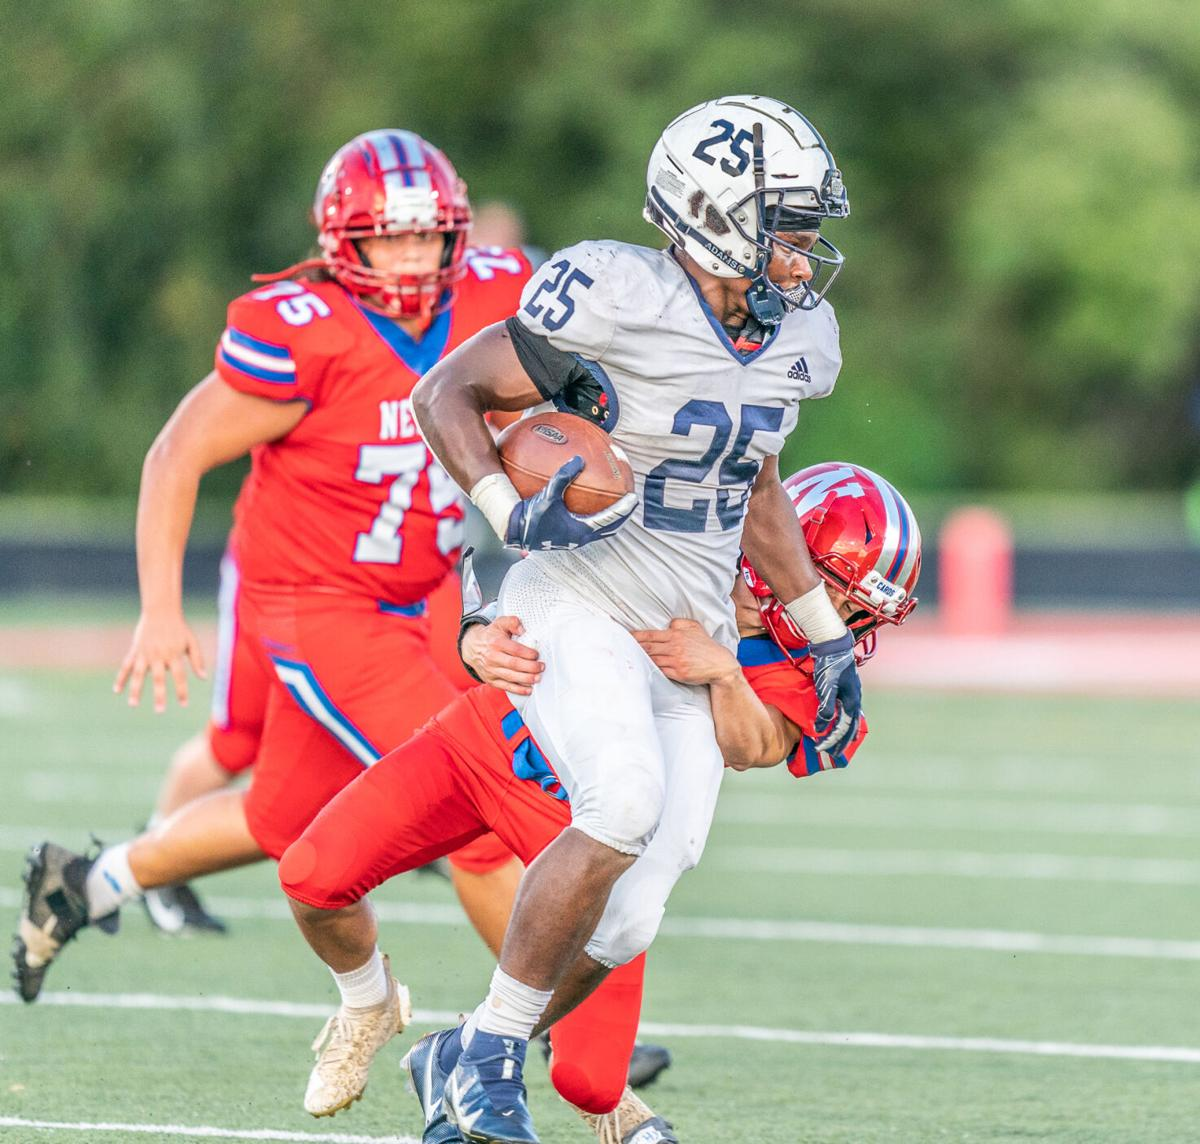 FOOTBALL ROUNDUP: Central suffers first loss, E'town dominates Nelson